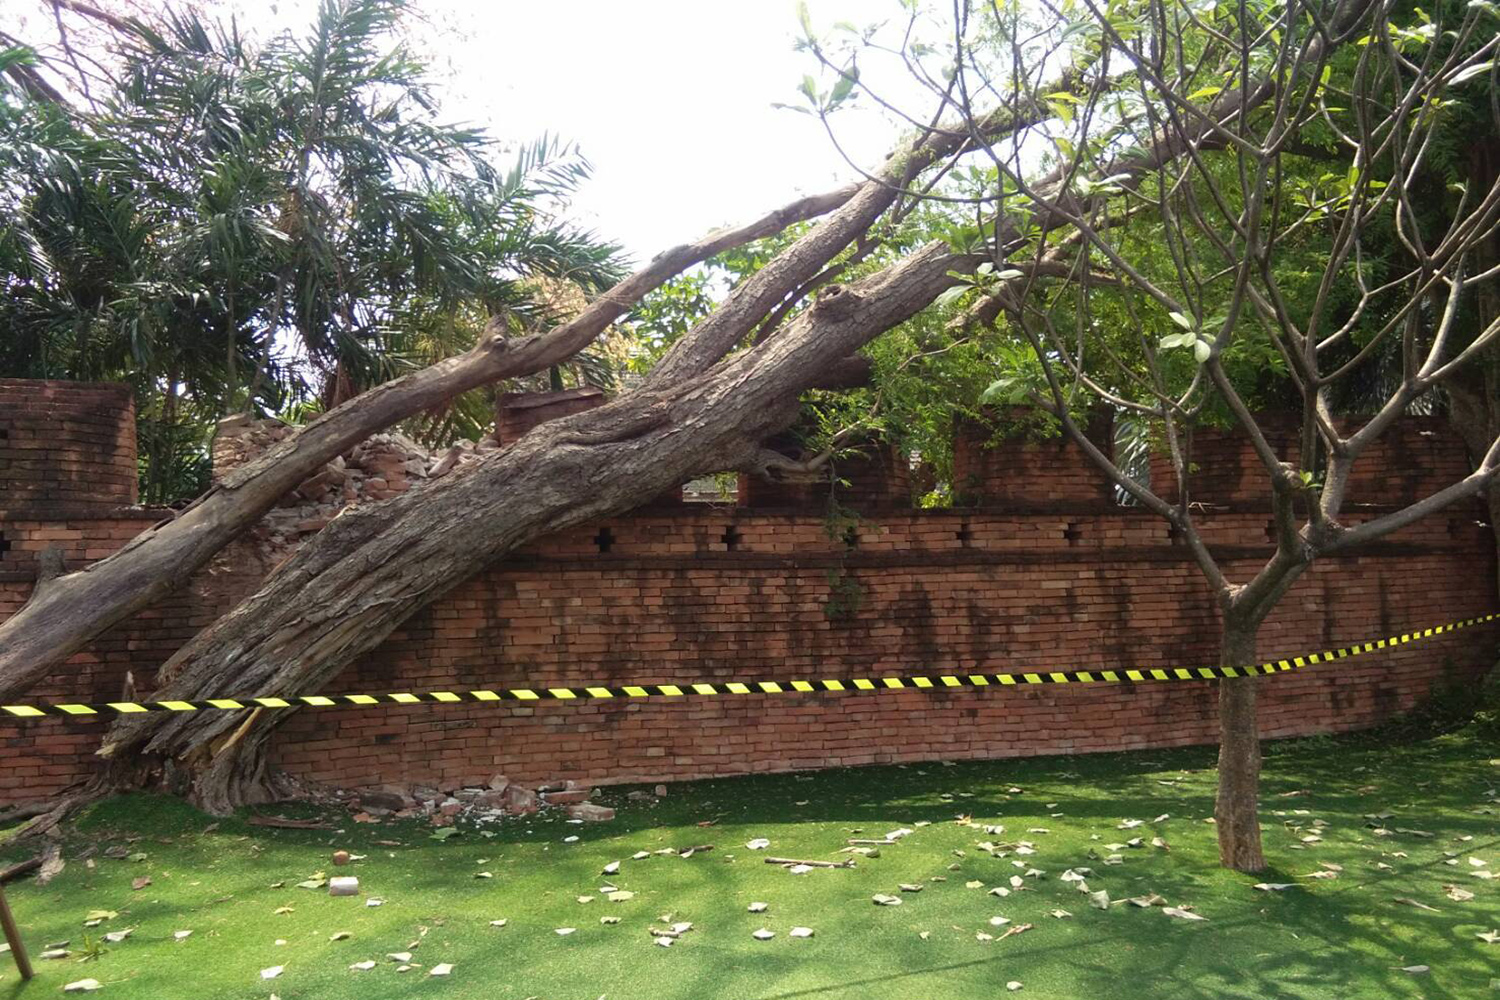 The area around the ancient wall in the Kanchanaburi municipality is taped off where a tamarind tree fell on it on Sunday. (Photo by Piyaratch Chongcharoen)